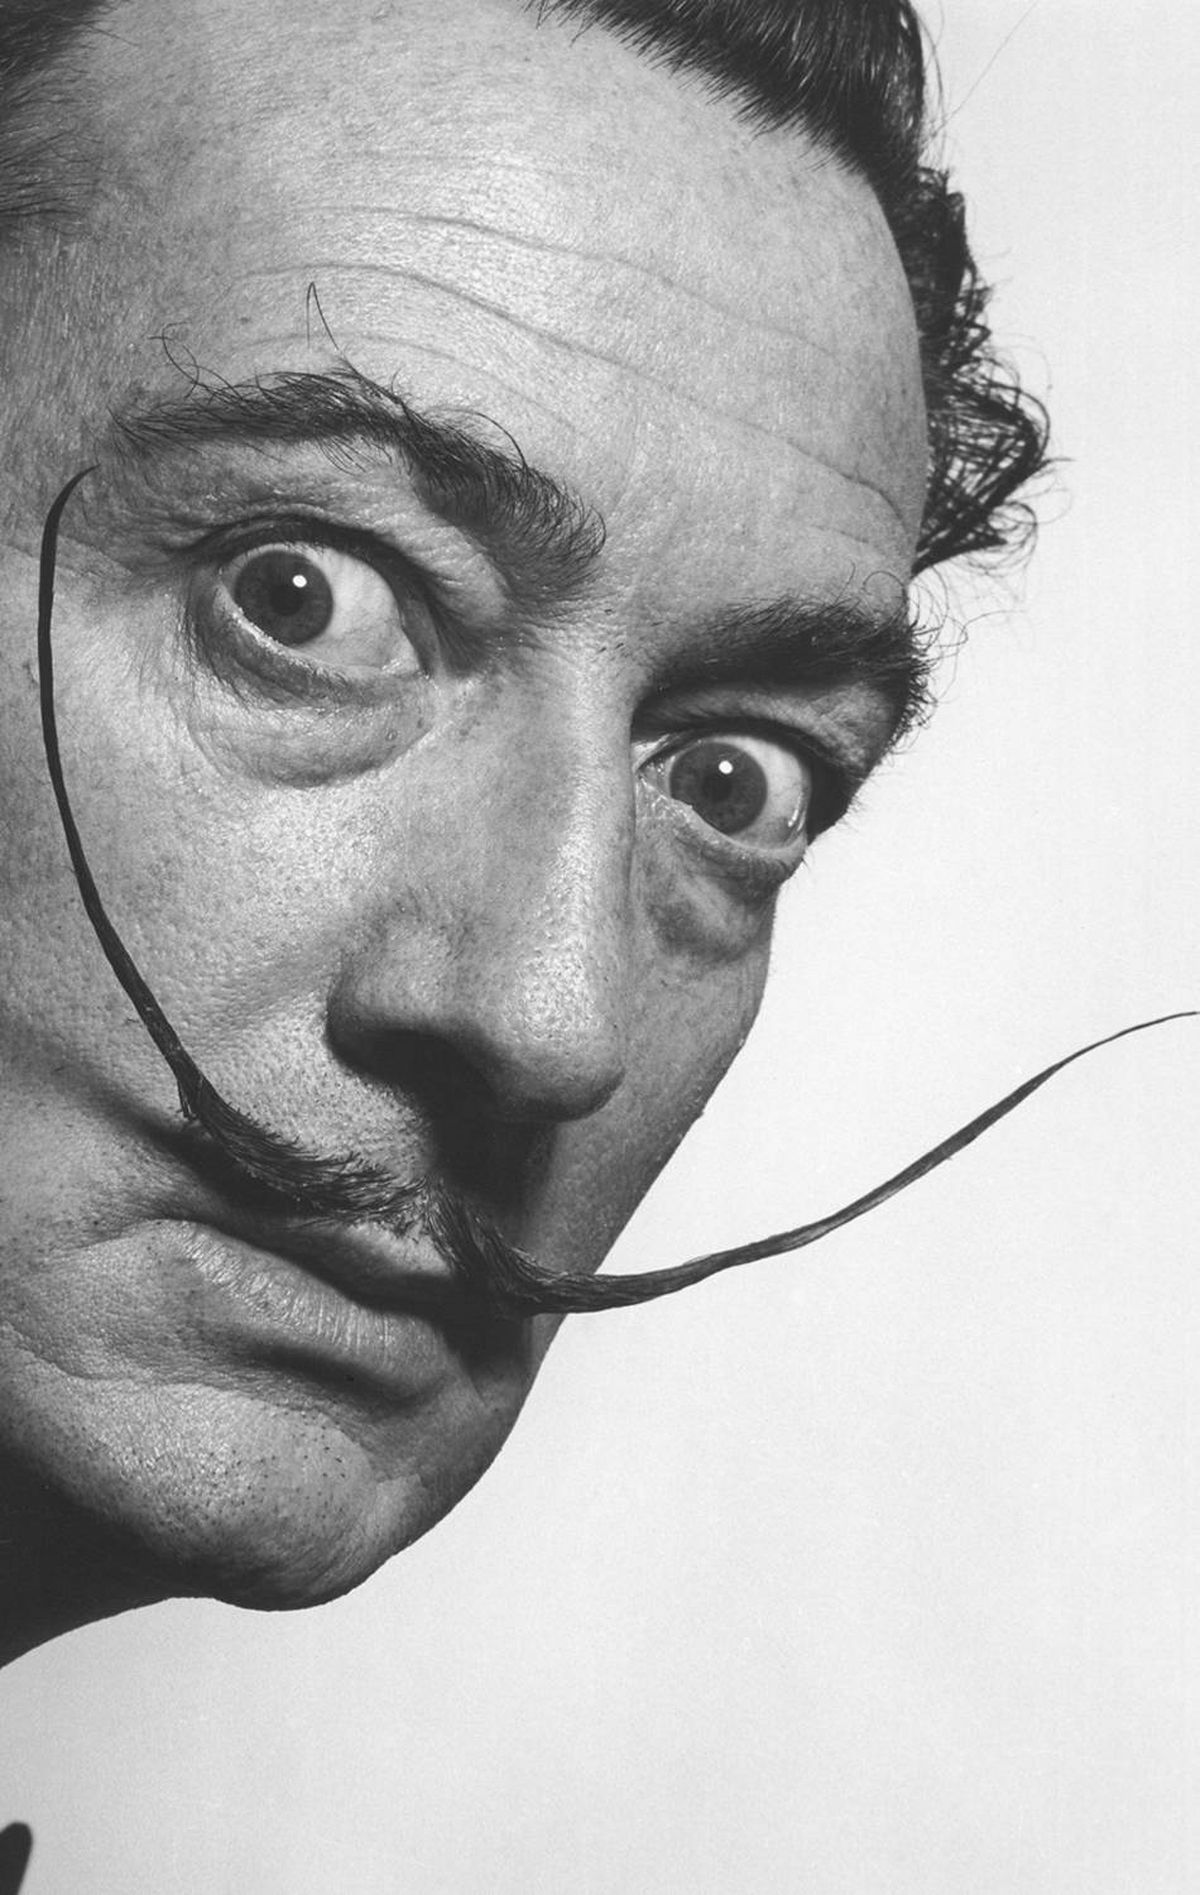 2. SALVADOR DALI What happens when you combine genius, surrealism and facial hair? This beautiful work of art. Don't stare at it too long.